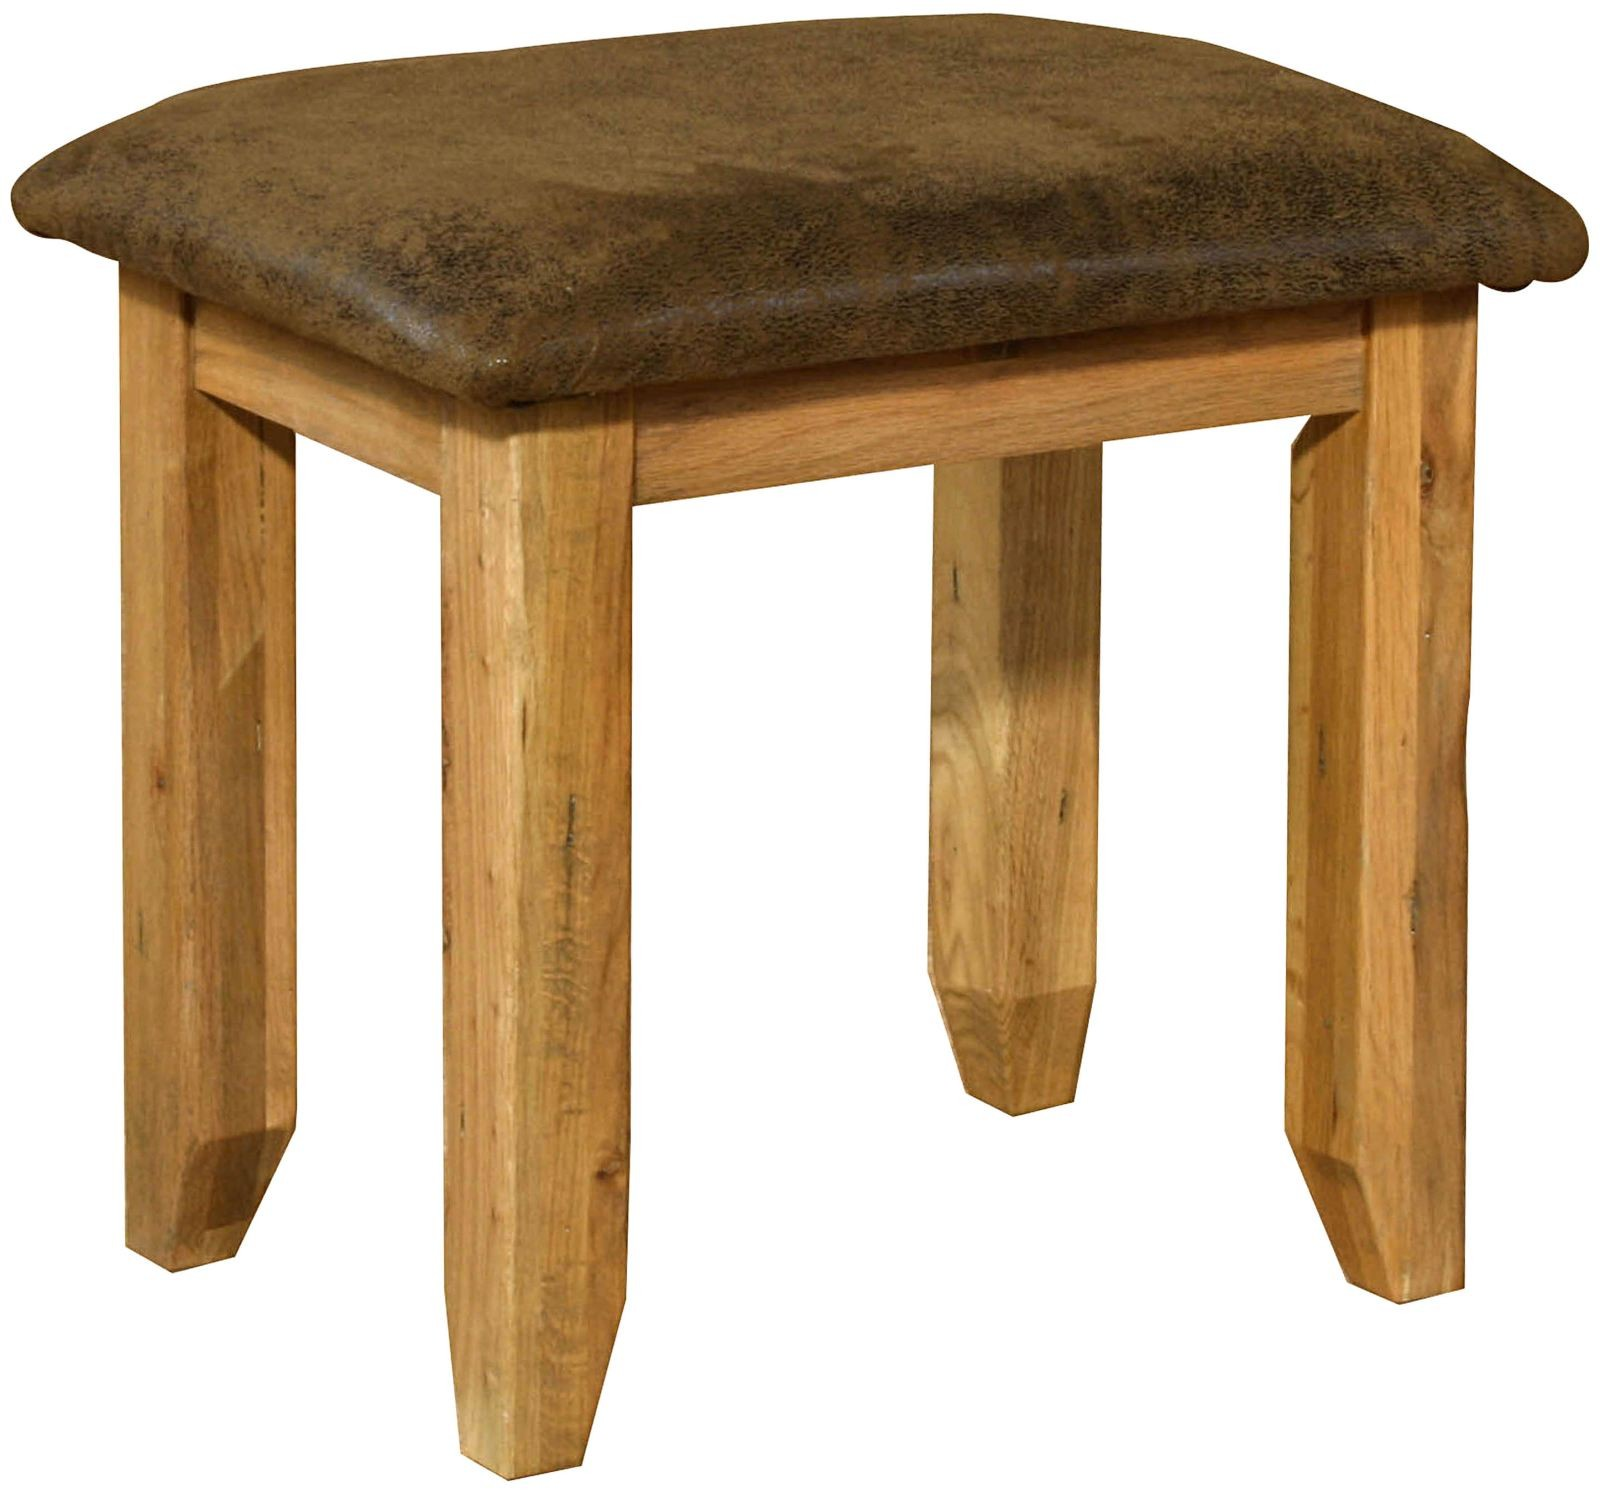 bordeaux rustic oak dressing table stool ebay. Black Bedroom Furniture Sets. Home Design Ideas